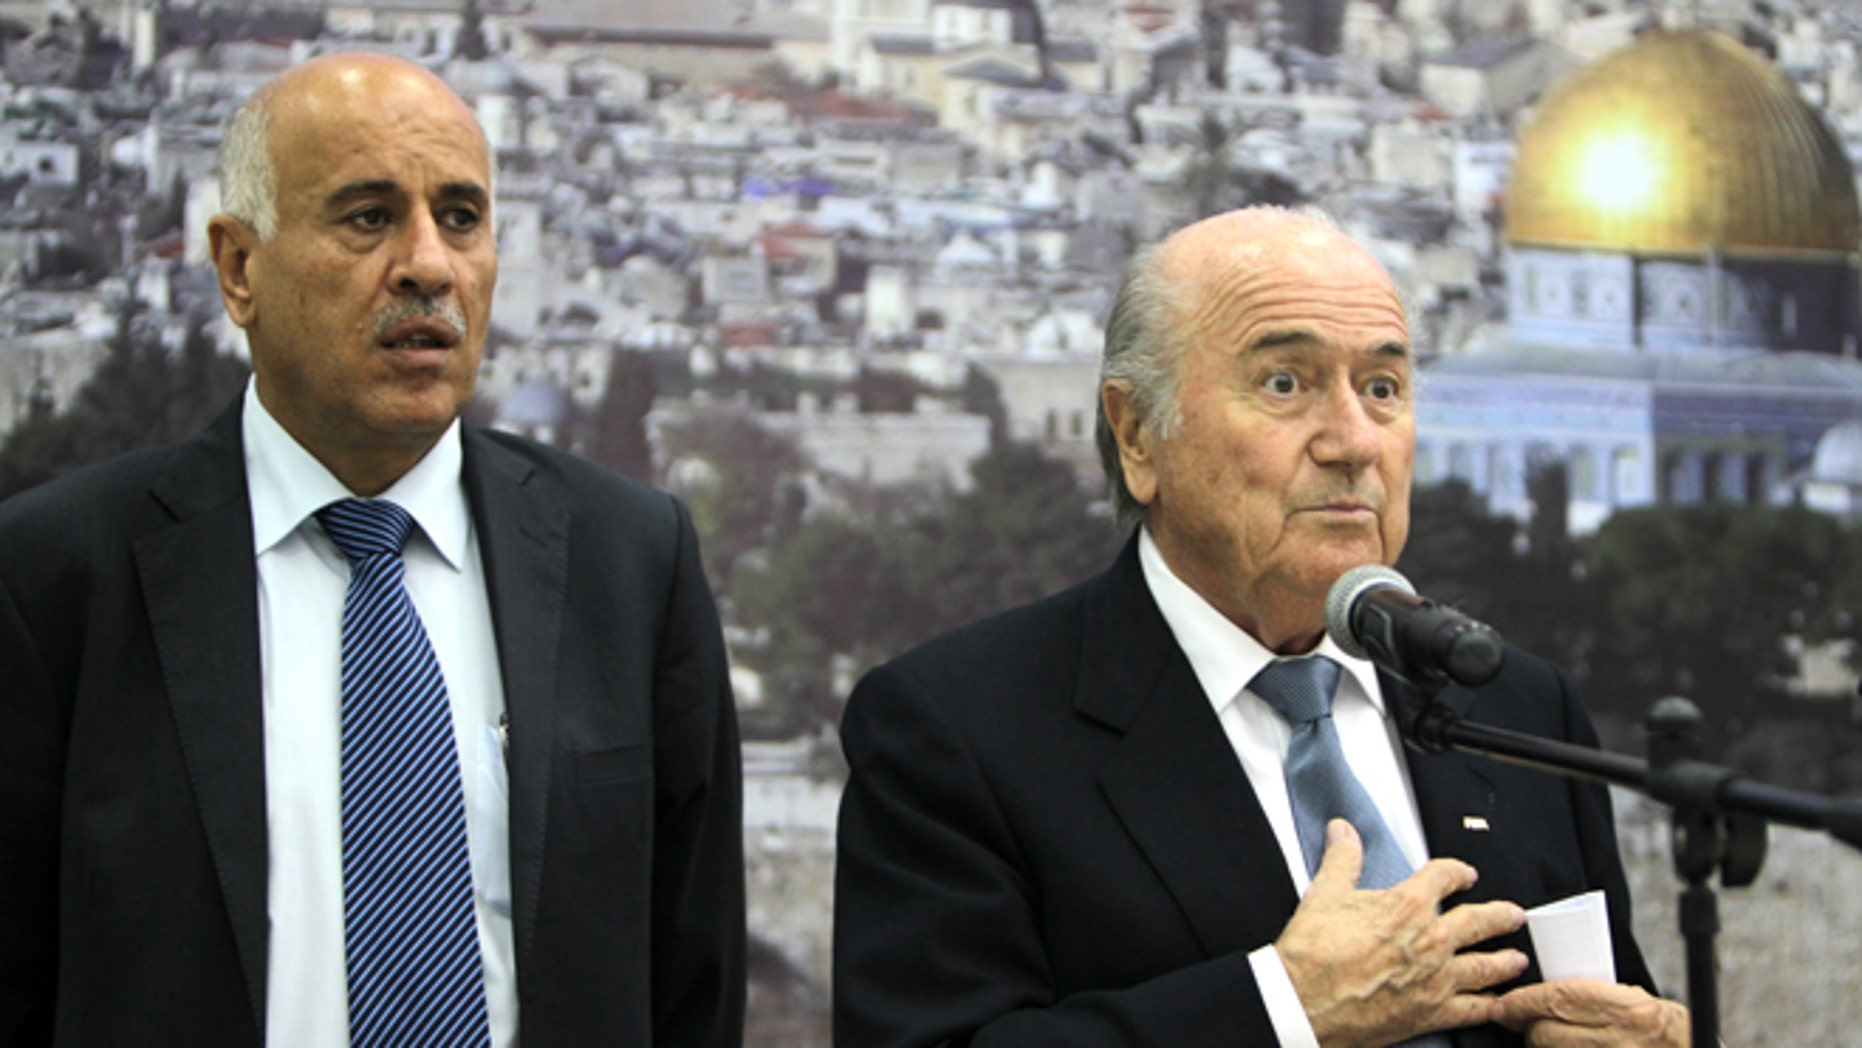 FIFA President Sepp Blatter (R) speaks as Palestinian Football Association chairman Jibril Rajoub listens on during a press conference in the West Bank city of Ramallah on July 7, 2013. Blatter is on a four-day-official visit to the Palestinian territories and Israel and neighboring Jordan during which he will notably launch football turf fields. AFP PHOTO/ABBAS MOMANI        (Photo credit should read ABBAS MOMANI/AFP/Getty Images)